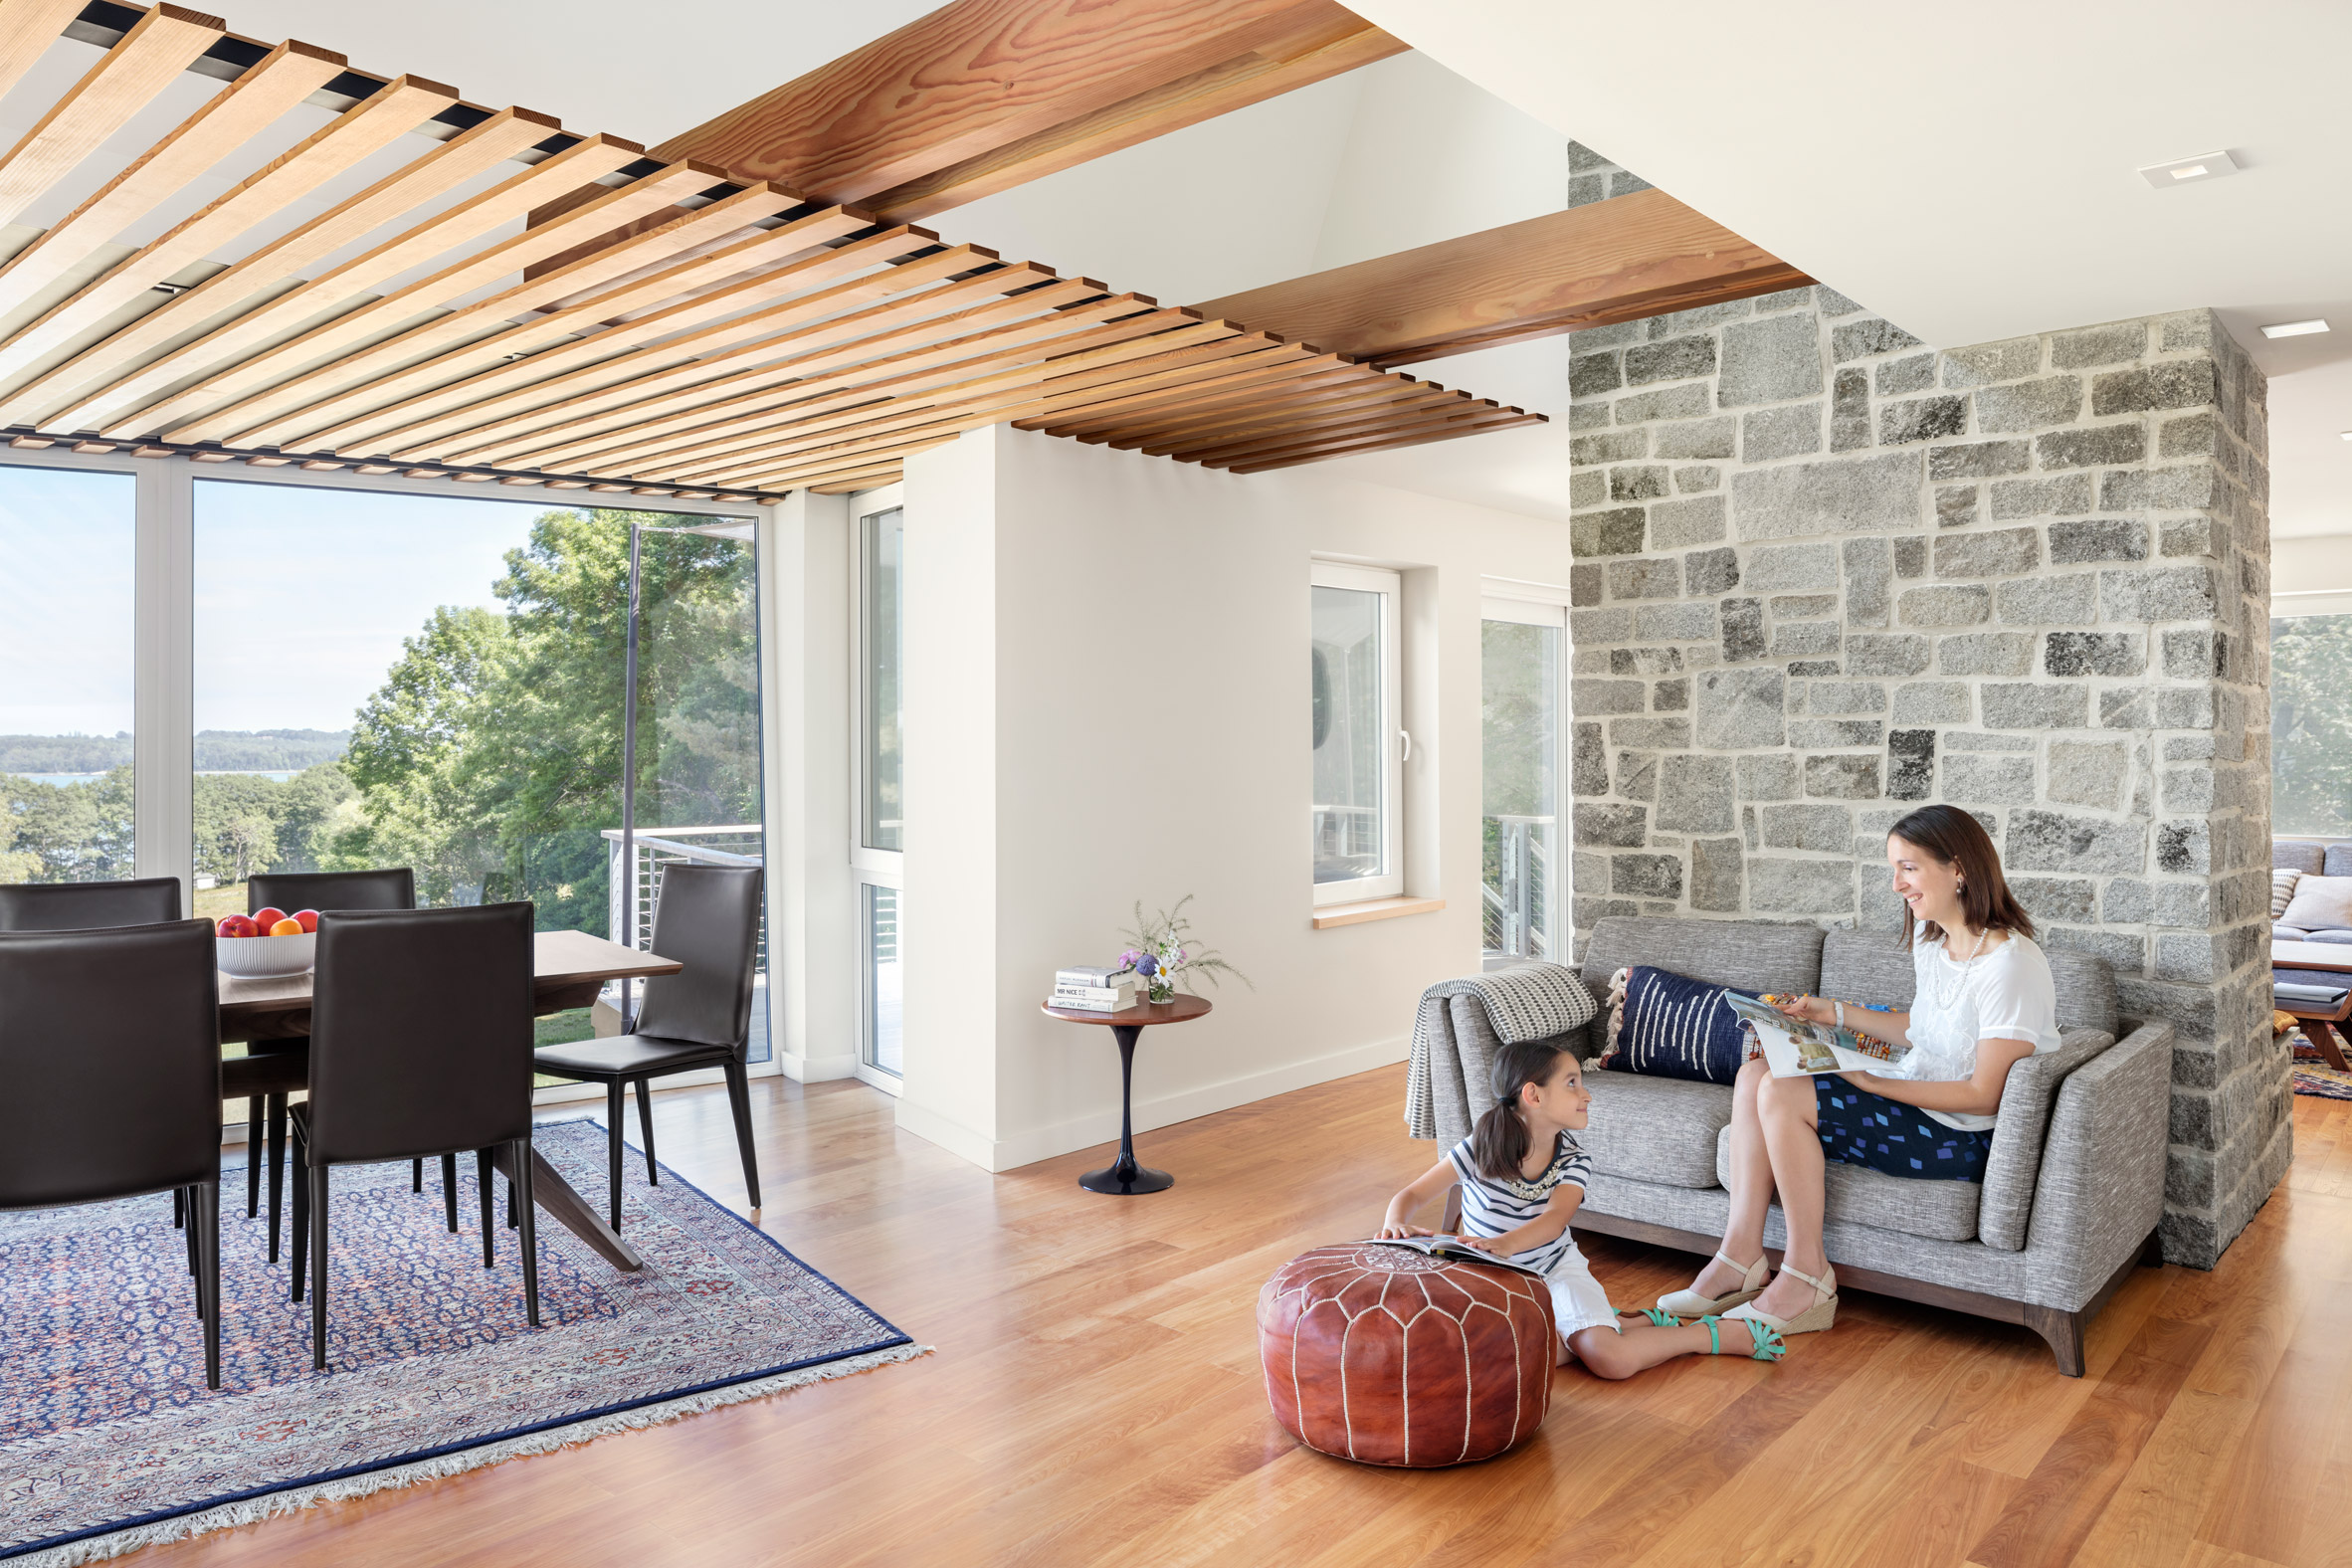 Cardamom and Almond by Kaplan Thompson Architects